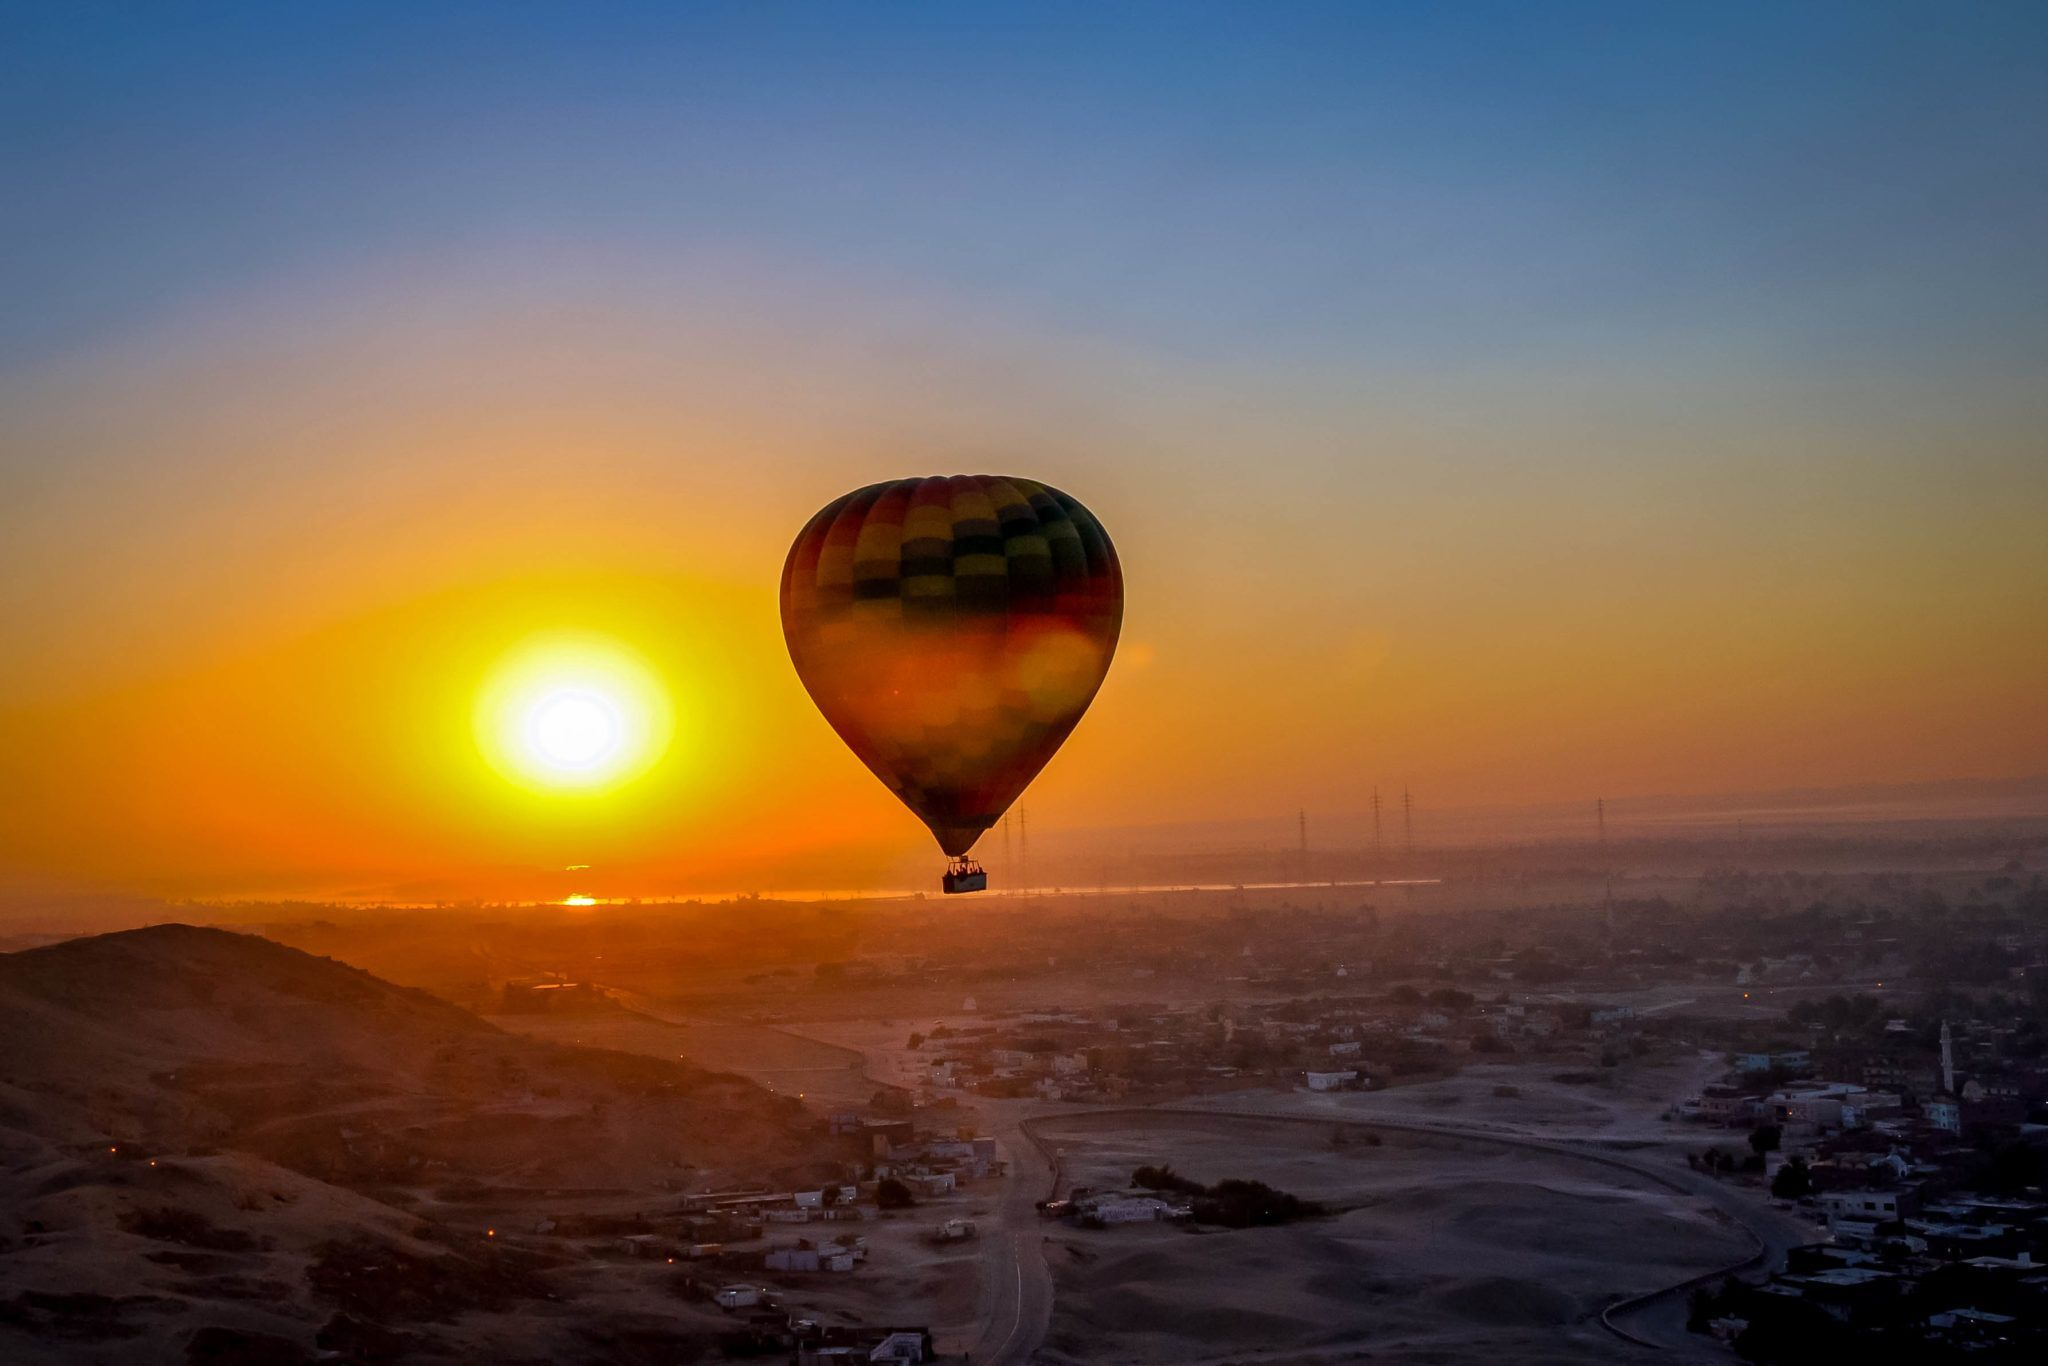 A hot air balloon over the Valley of the Kings is a fun part of any Egypt itinerary